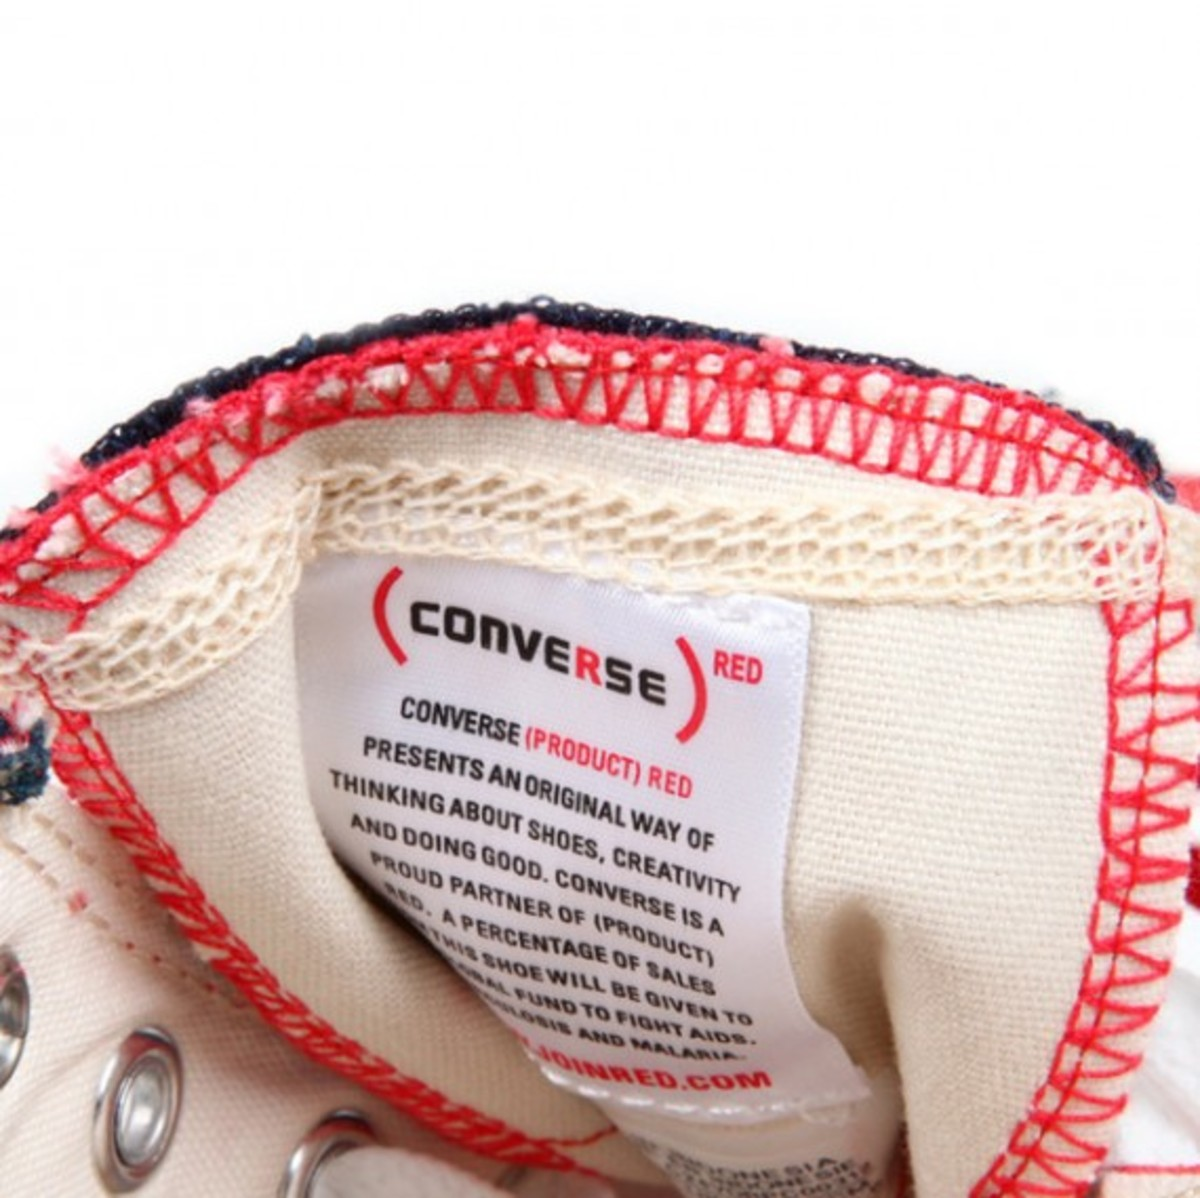 us-alteration-union-custom-made-converse-ct-sneakers-06